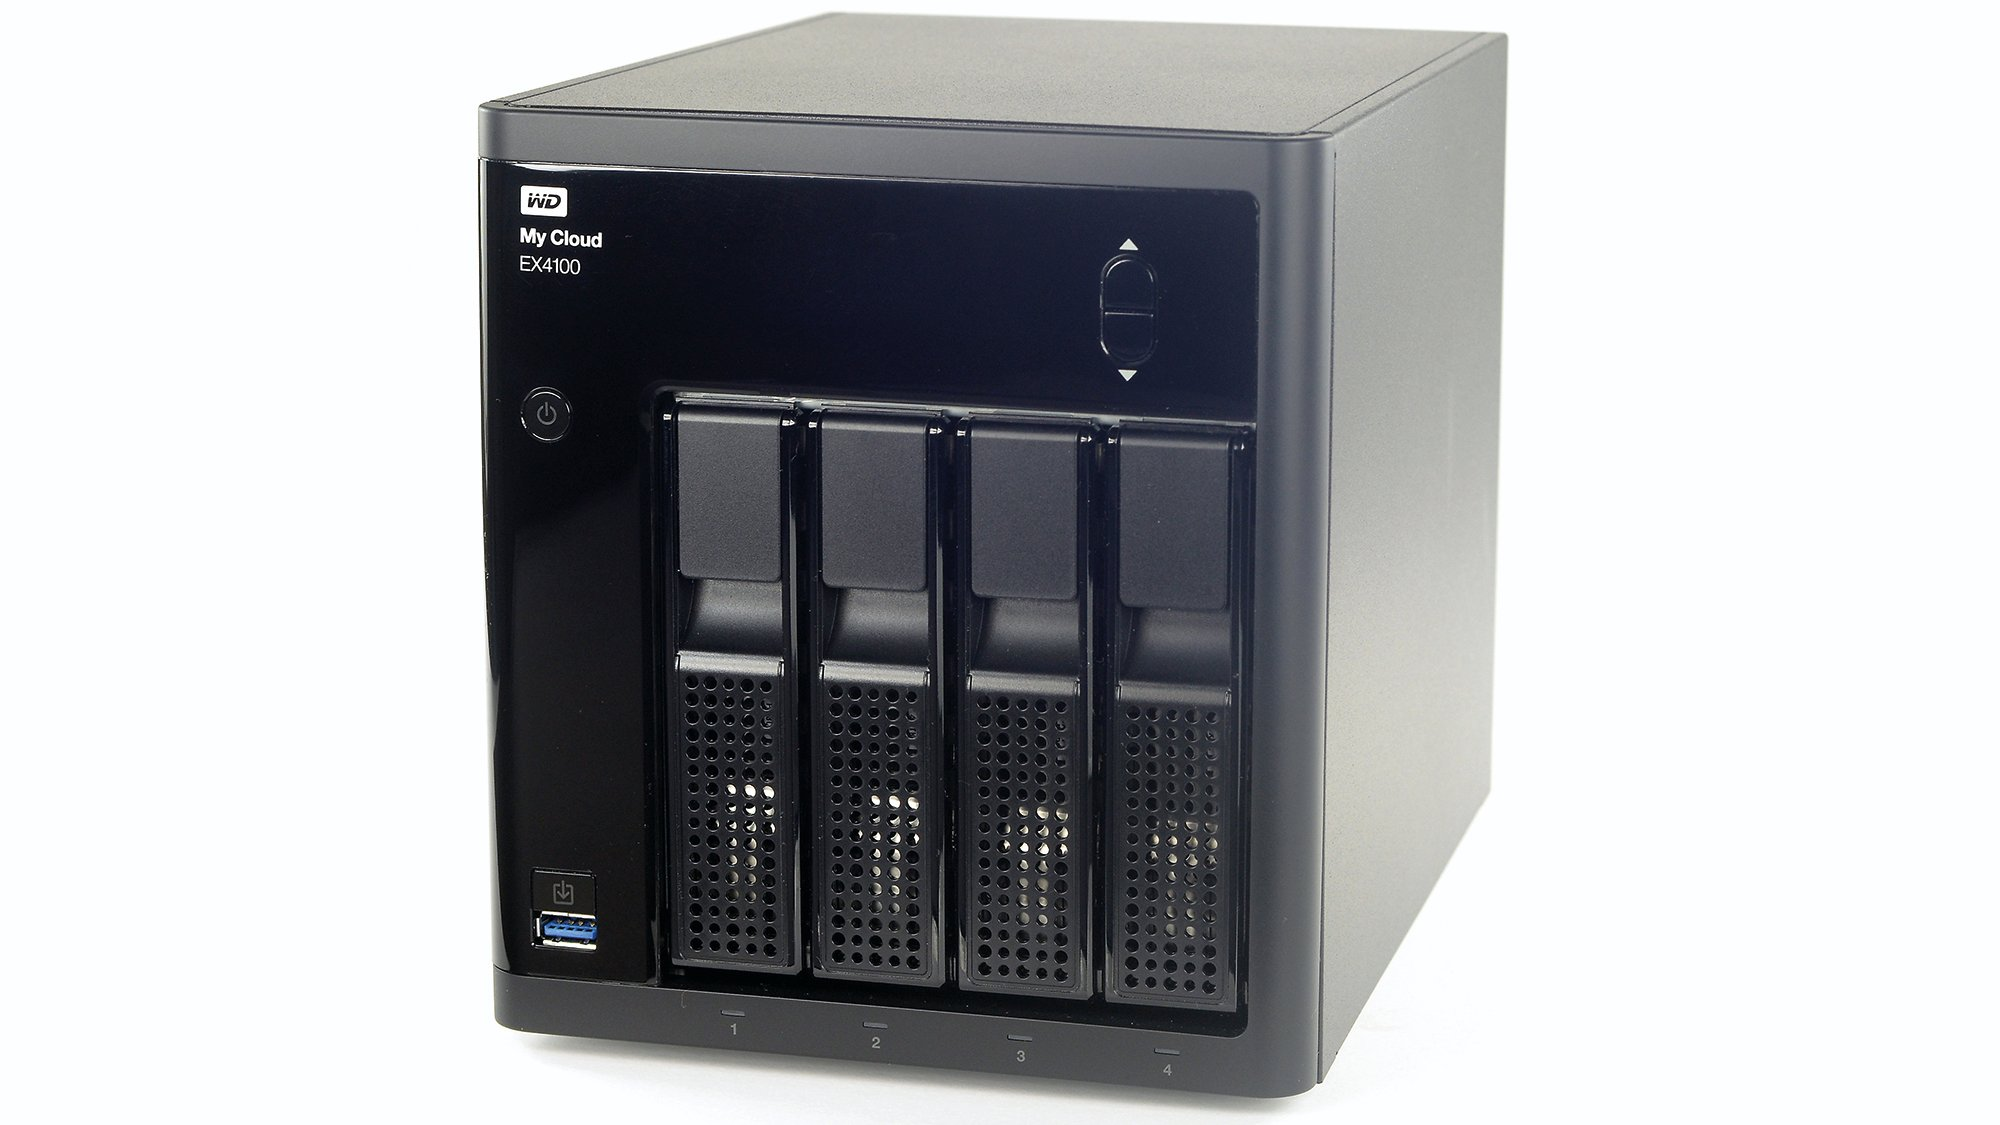 Wd My Cloud Ex4100 Review A Simple Effective And